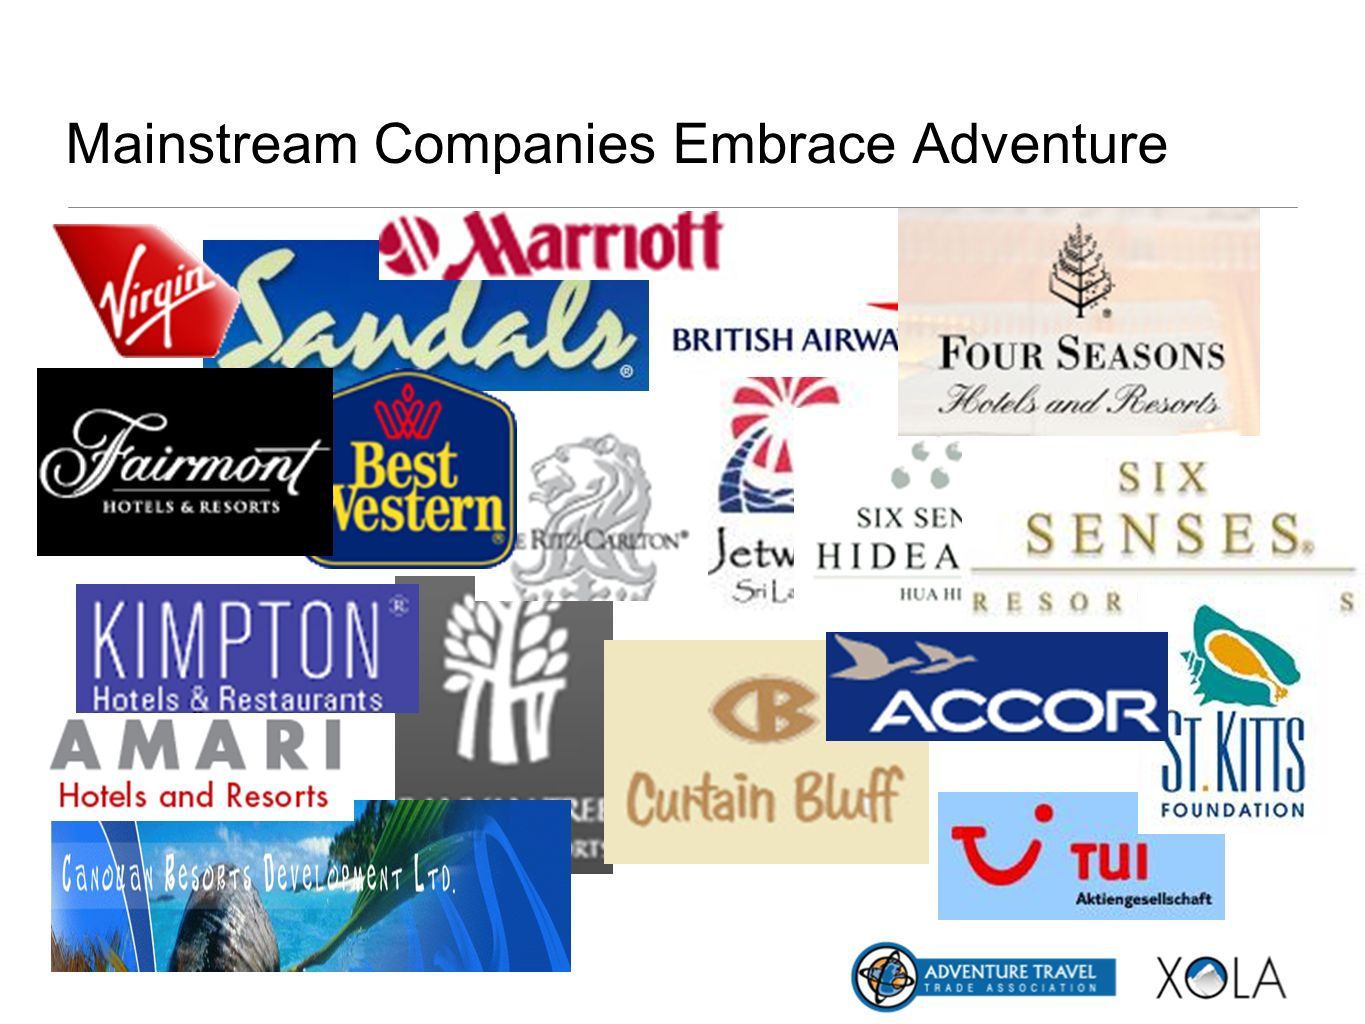 Mainstream Companies Embrace Adventure